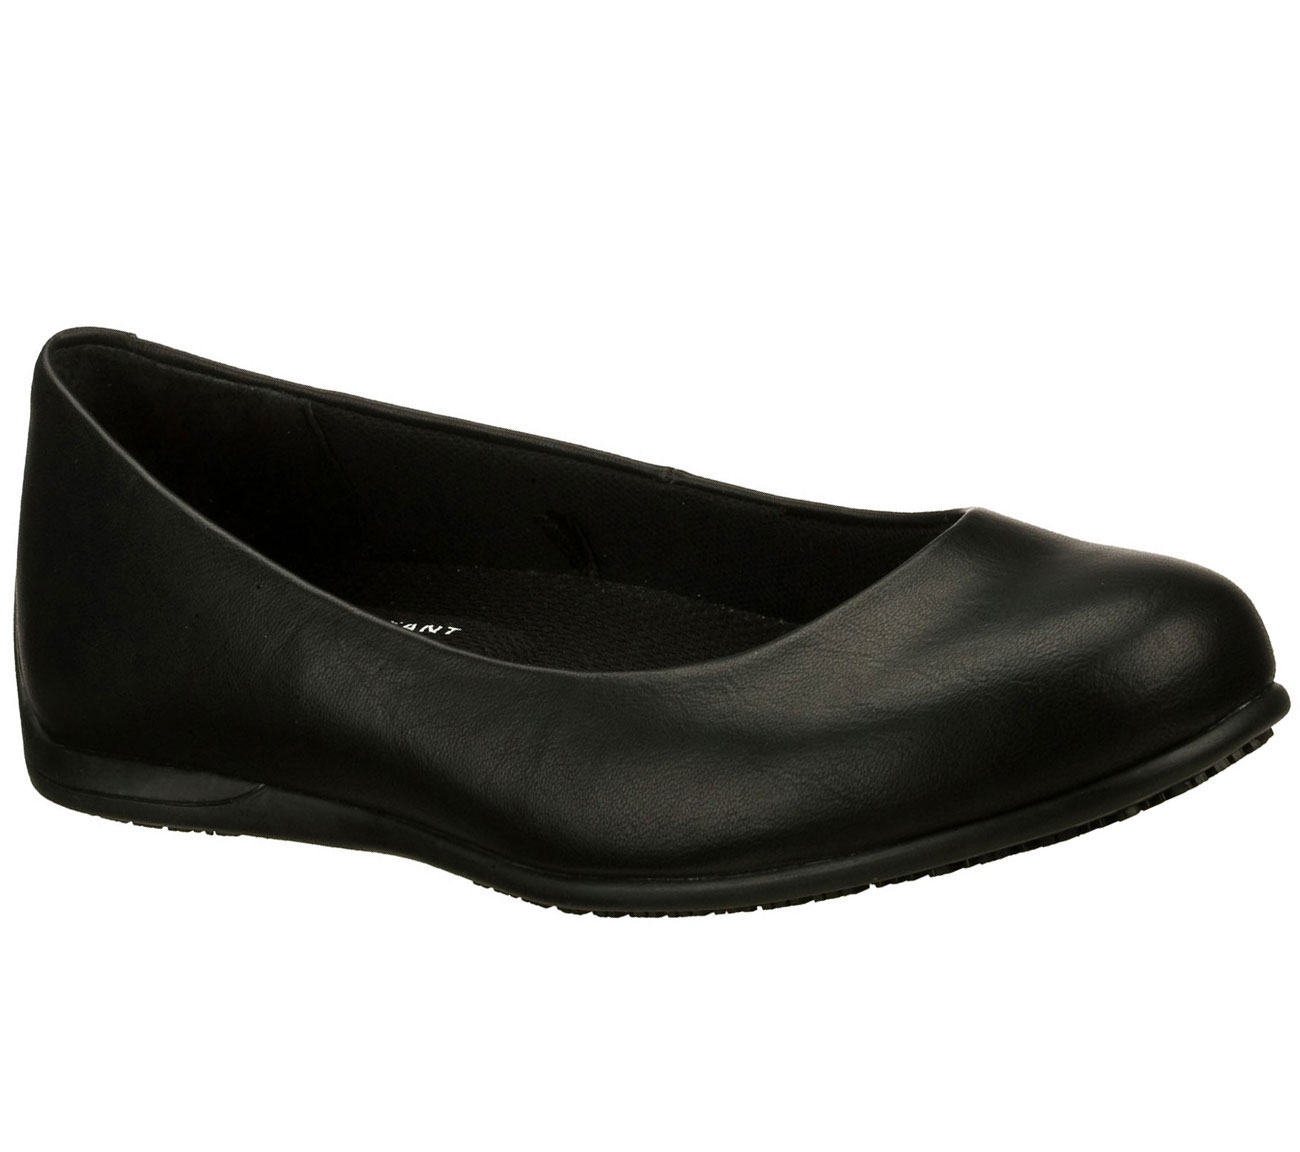 Work Shoes Non Slip Sole - SKECHERS Official Site